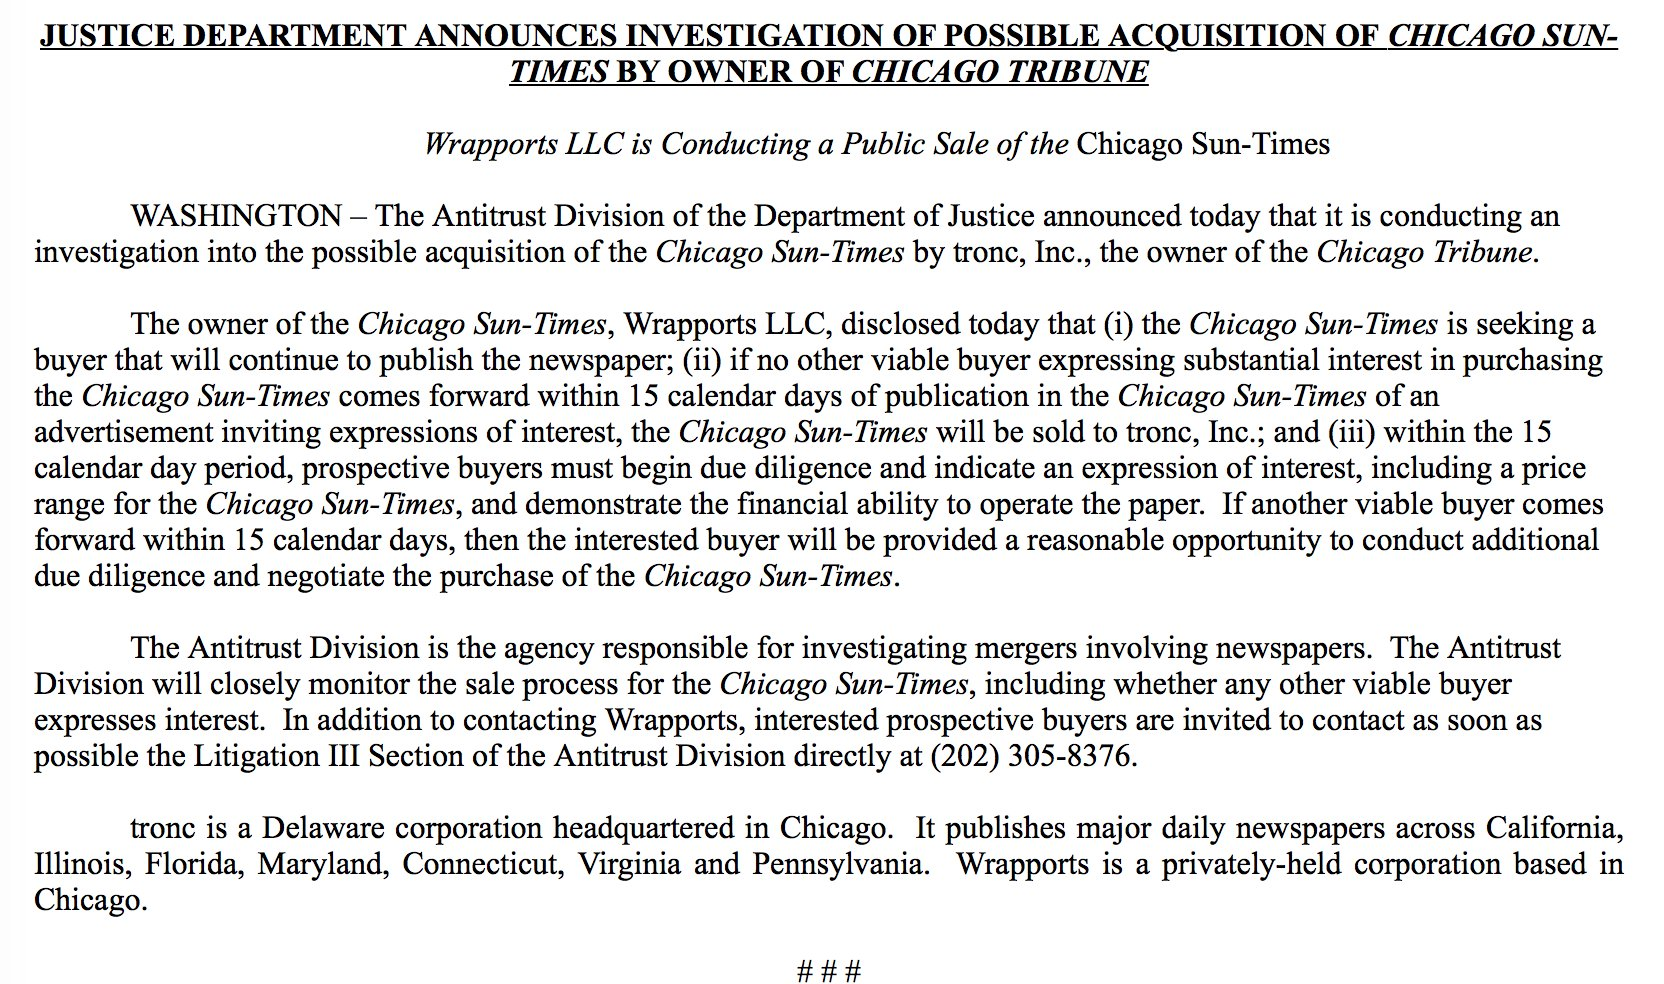 Inbox: DOJ investigating possible tronc purchase of the Chicago Sun-Times https://t.co/vwDYj9aTvD